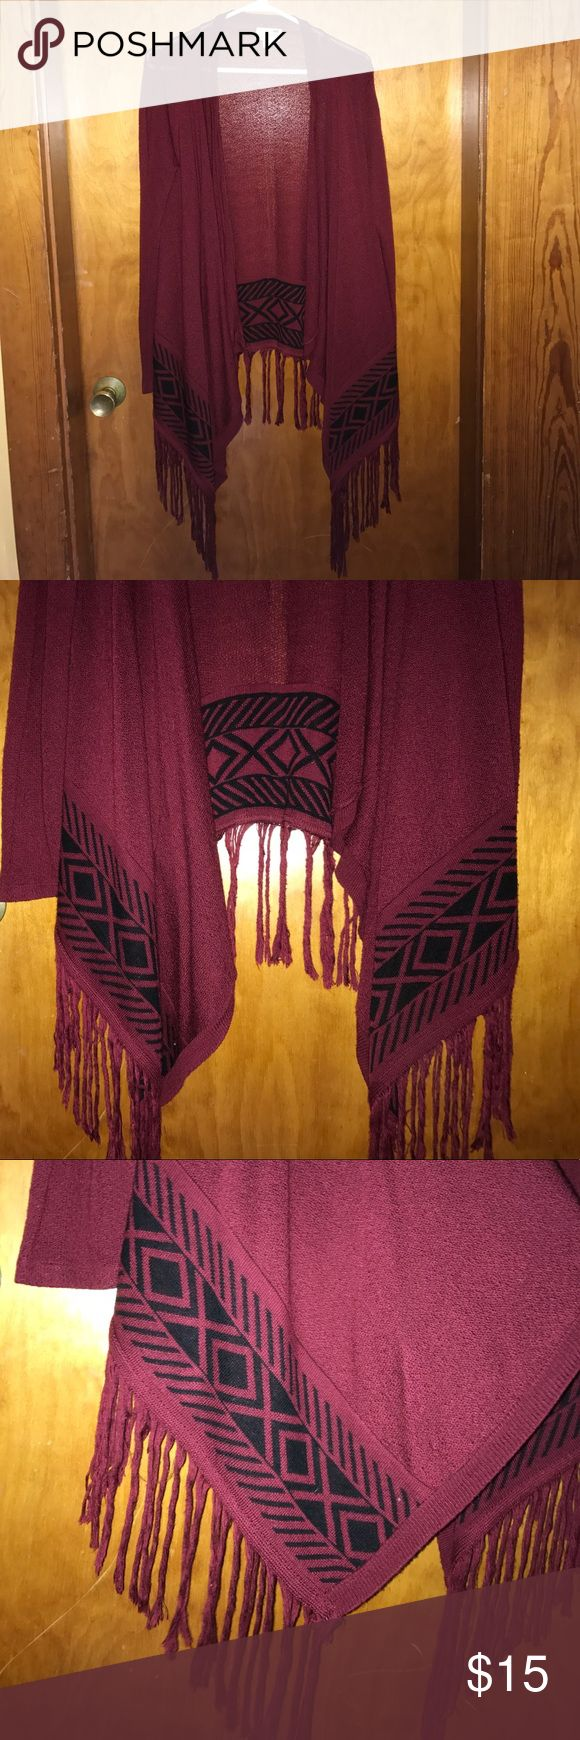 LA HEARTS burgundy tribal print fringe cardigan LA Hearts. Long sleeve burgundy cardigan with black tribal print at hemline. Burgundy fringe alone bottom. Longer in front and shorter in back. Worn once. LA Hearts Sweaters Cardigans